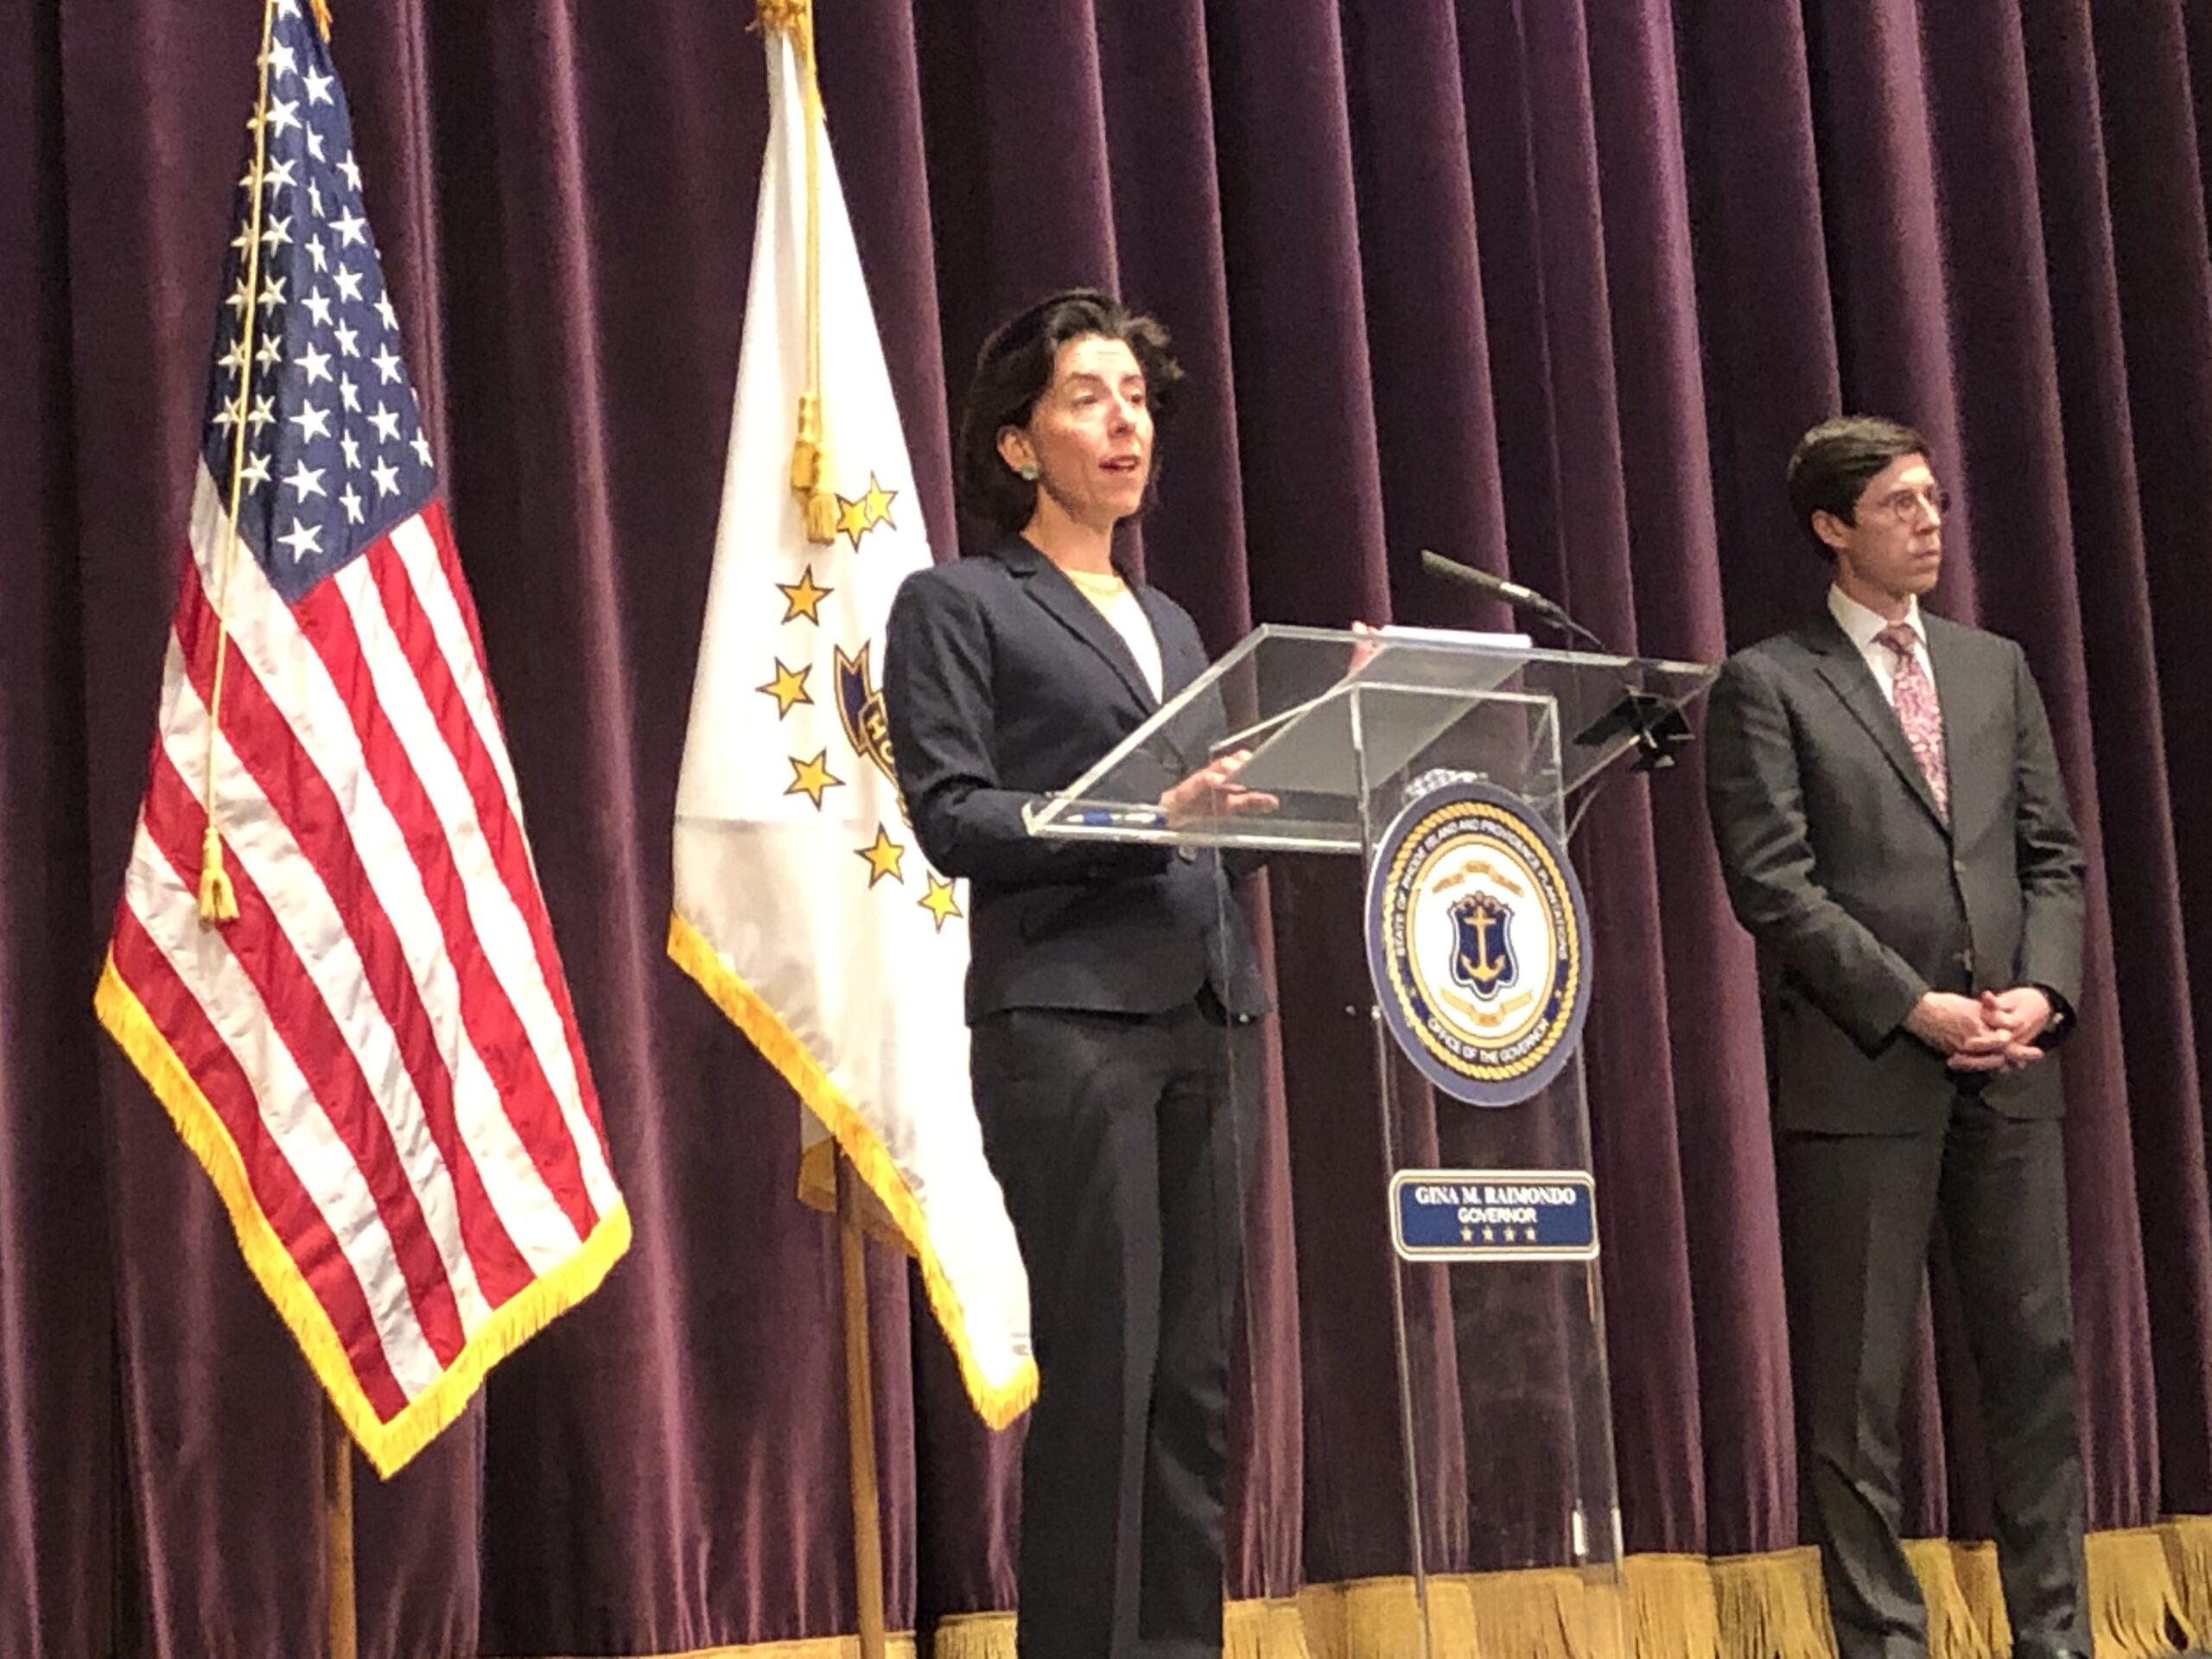 John DePetro asked Gov. Raimondo about summer sports camps